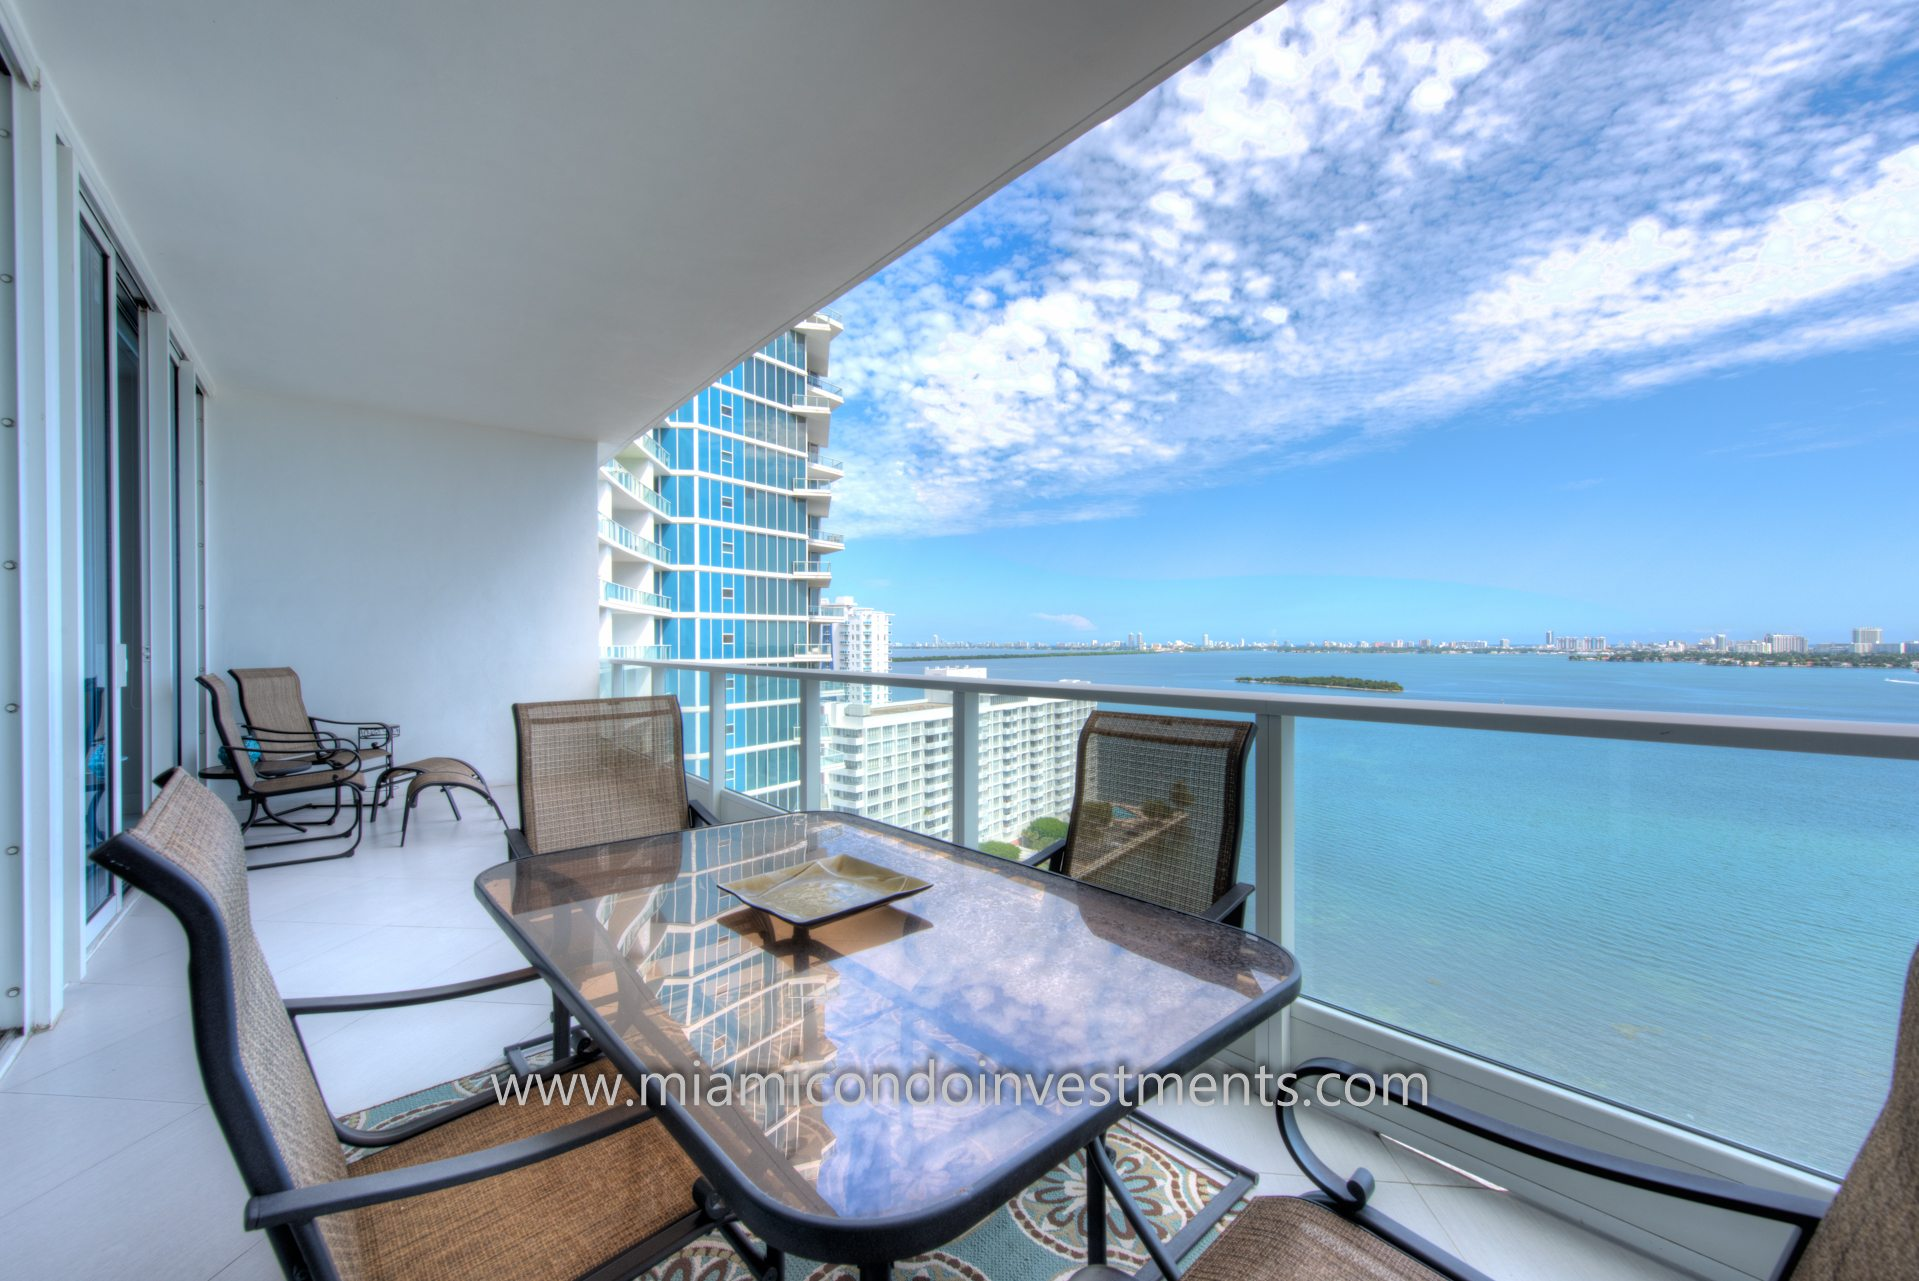 8-foot deep terrace with direct water view